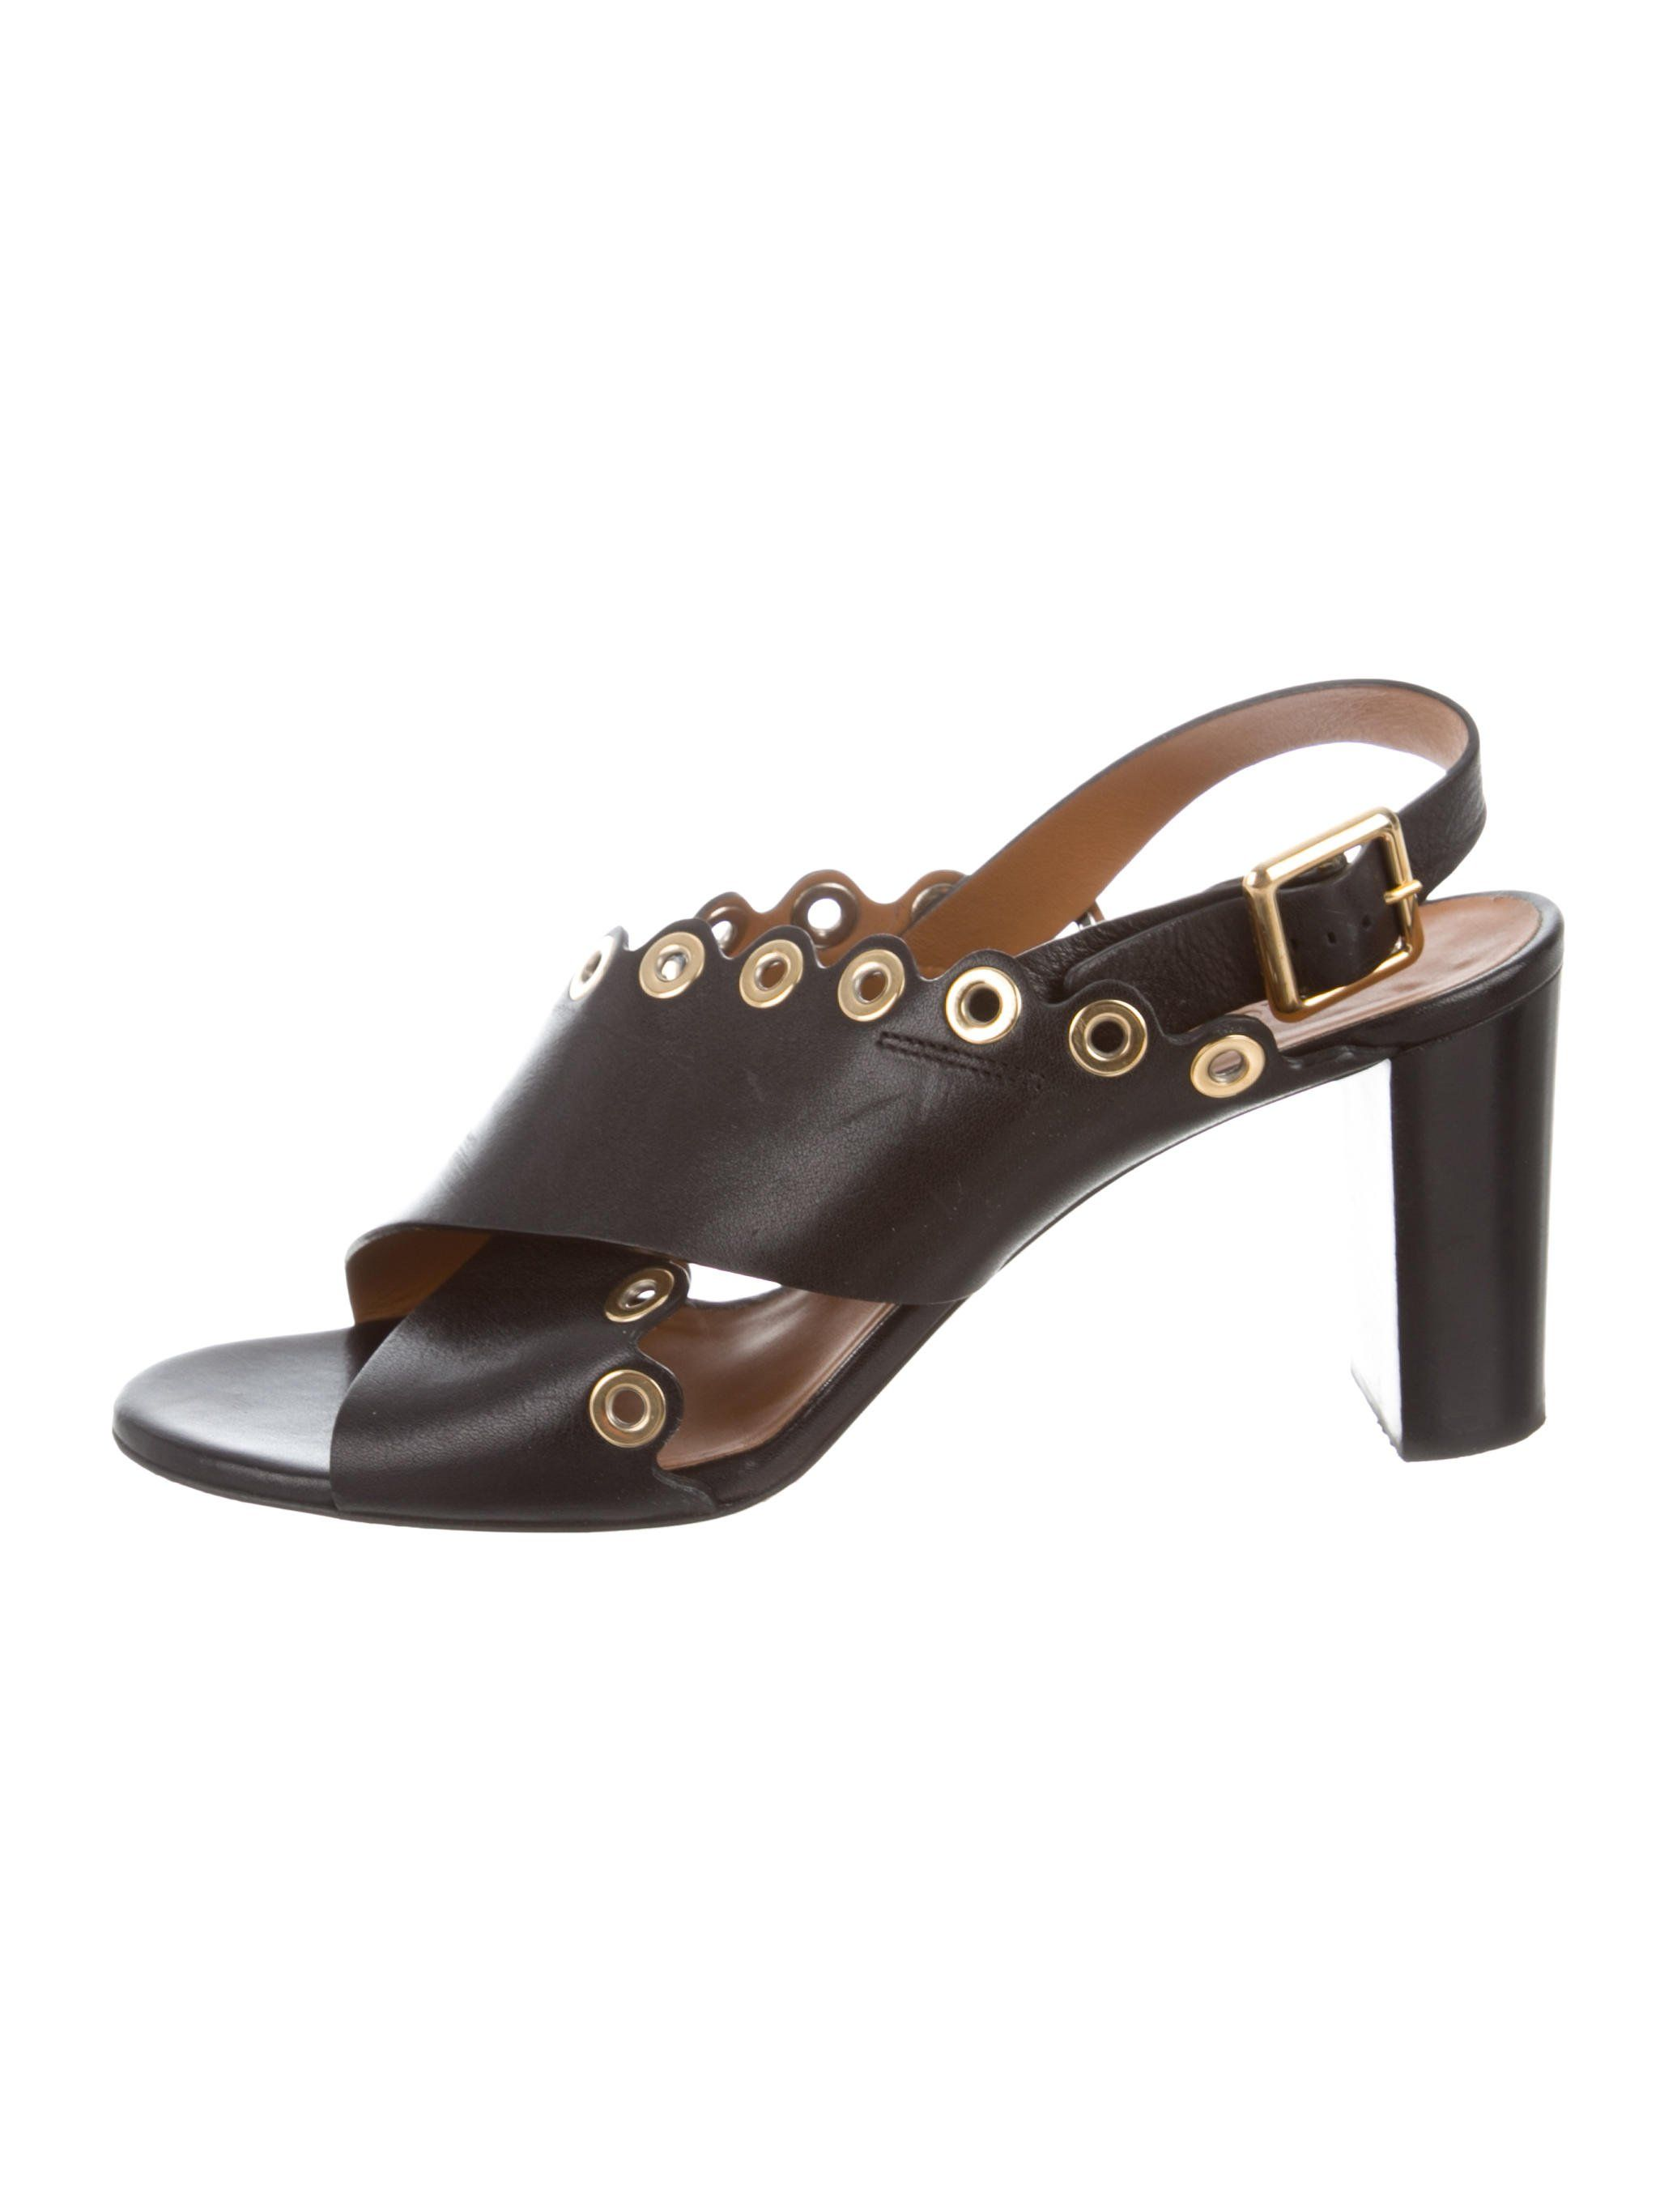 7df78ba65 Black leather Chloé sandals with gold-tone grommets at scalloped top lines